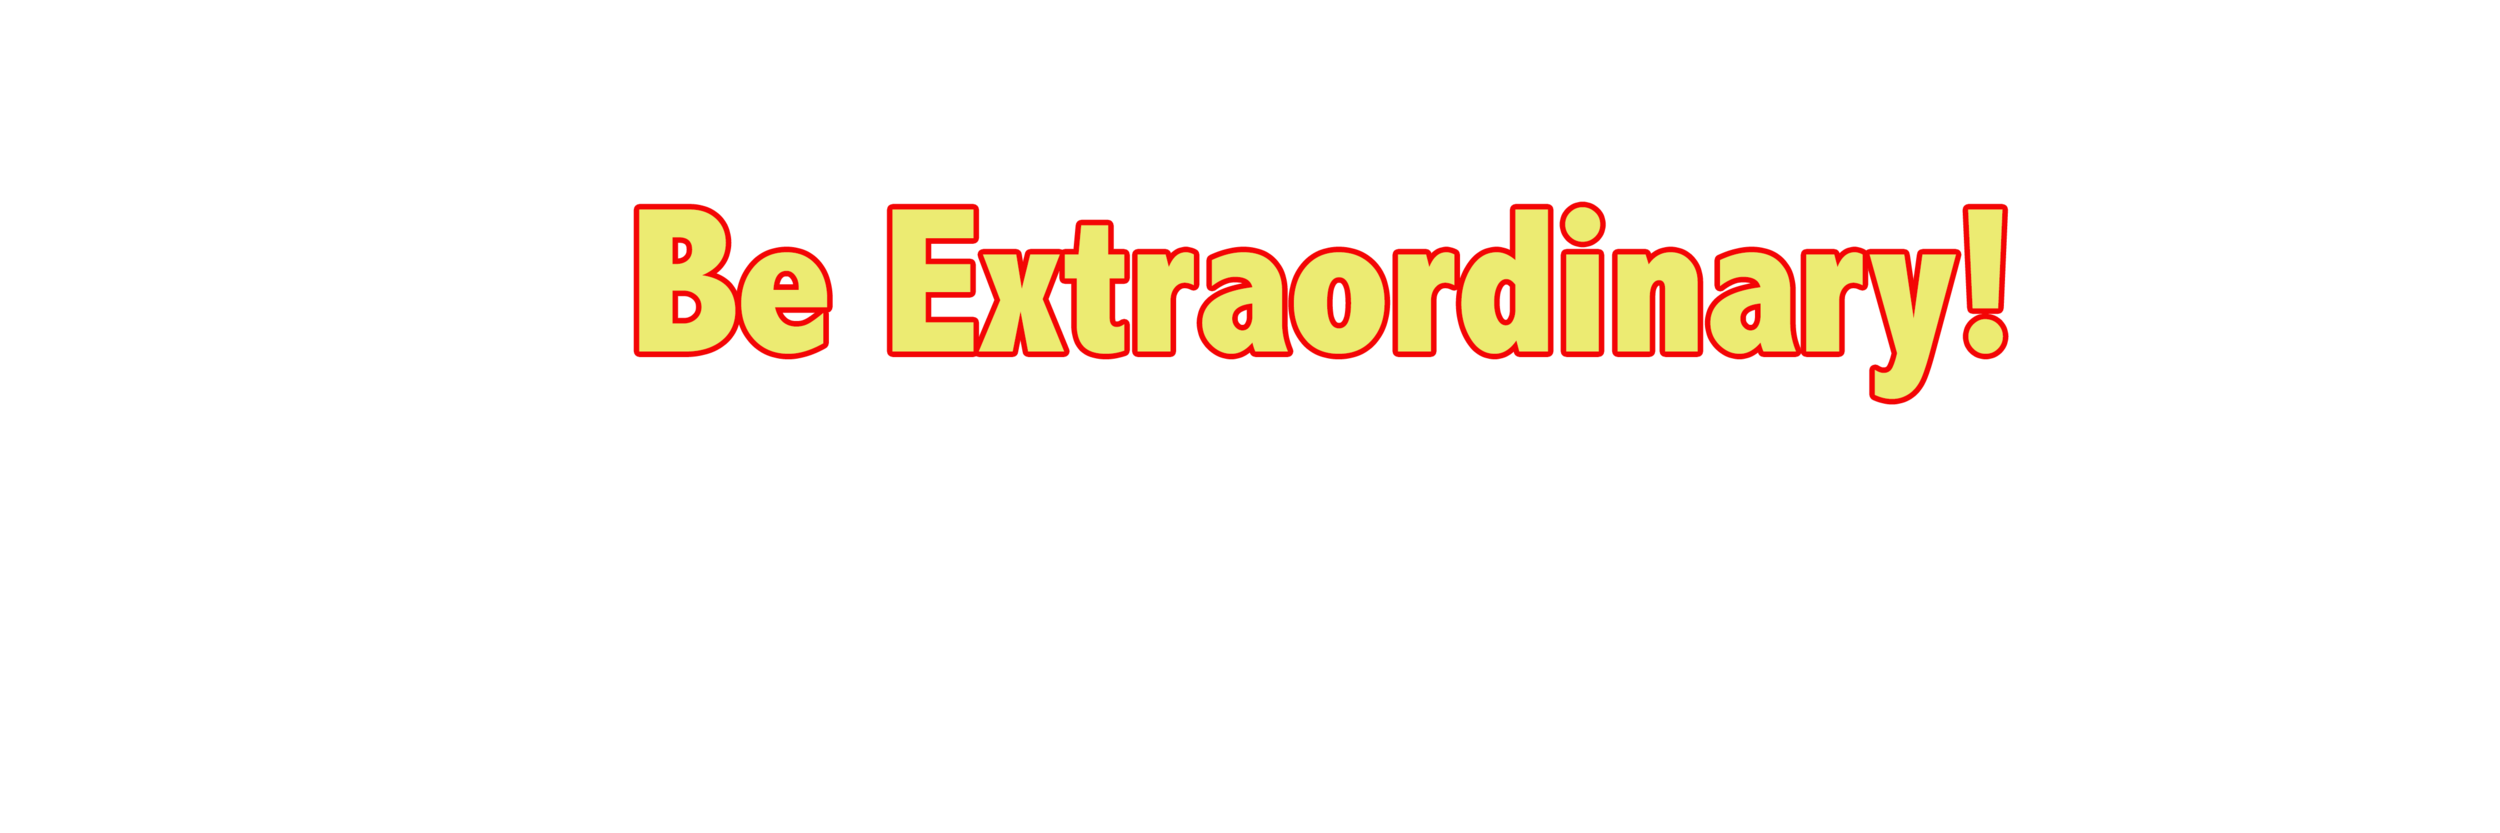 letteringforConfWebextraordinary.png